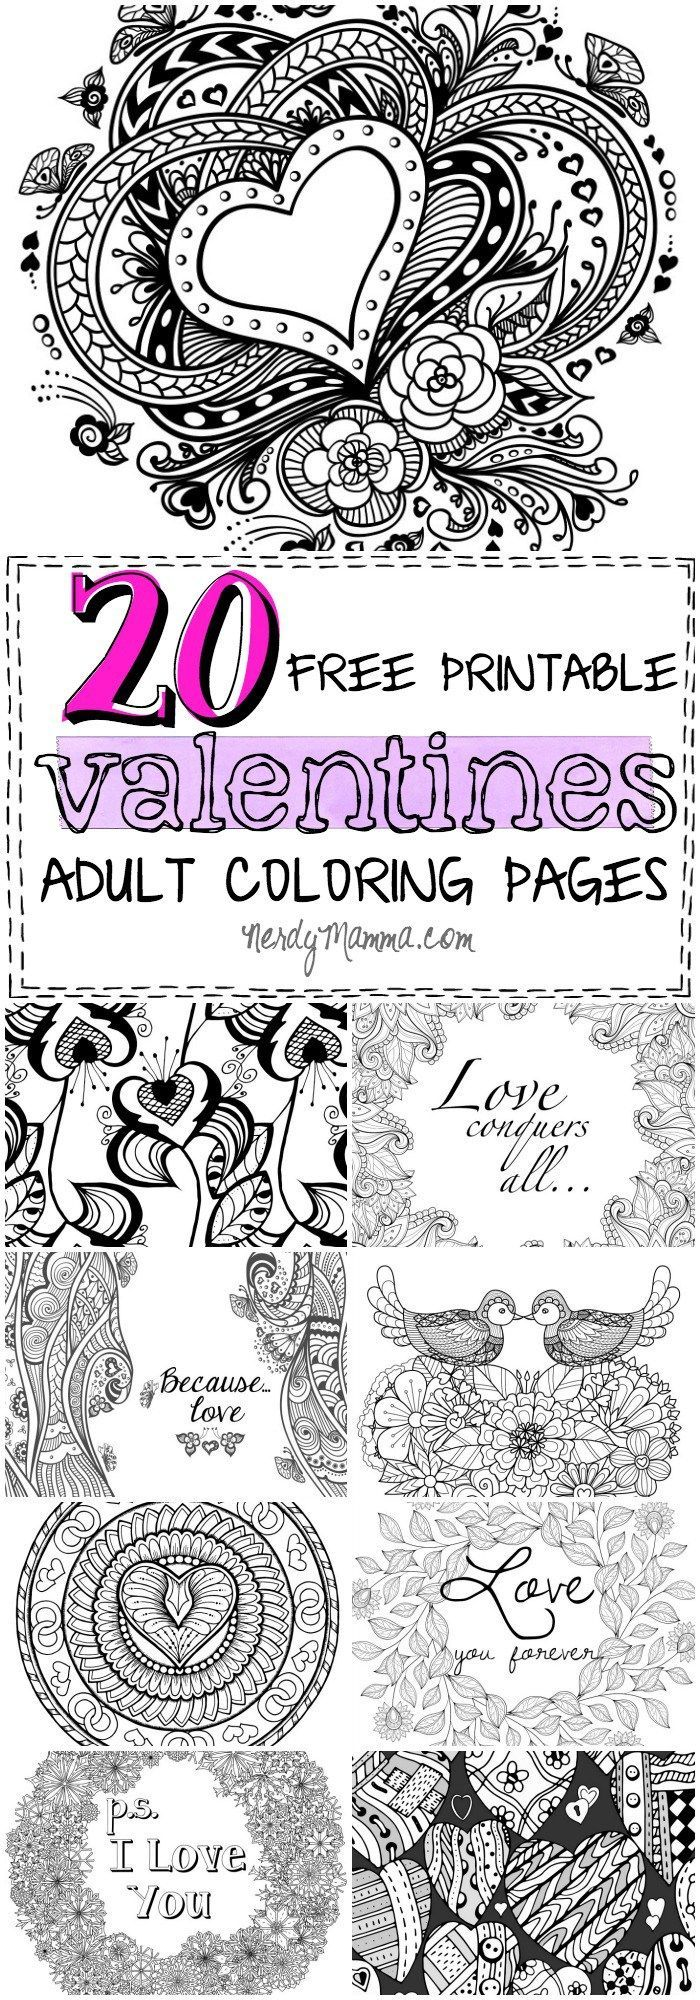 Free printable coloring pages valentines day - 20 Free Printable Valentines Adult Coloring Pages